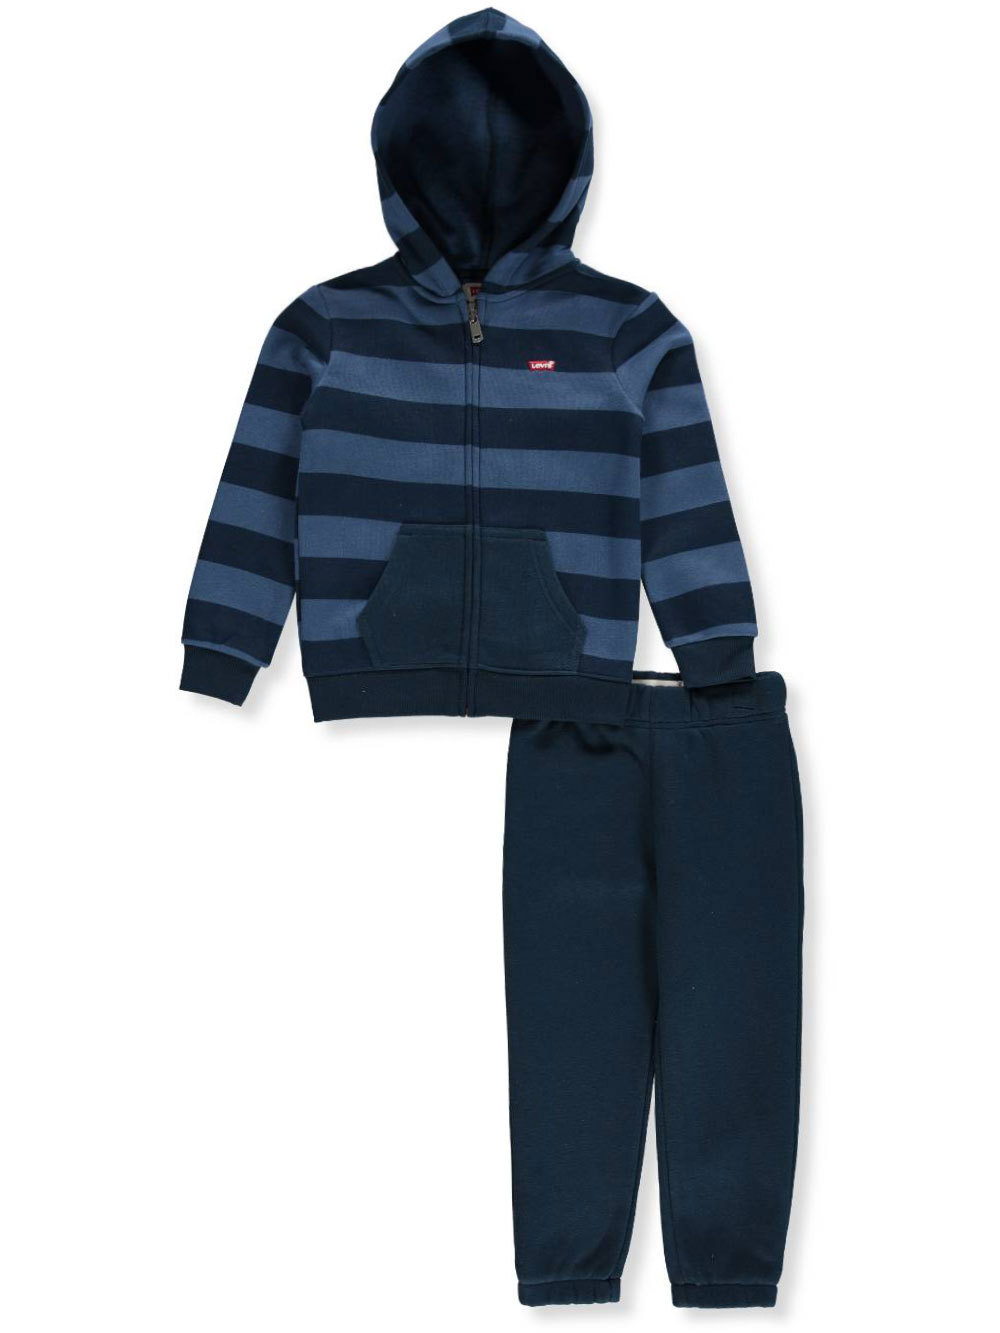 Size 3t Pant Sets for Boys